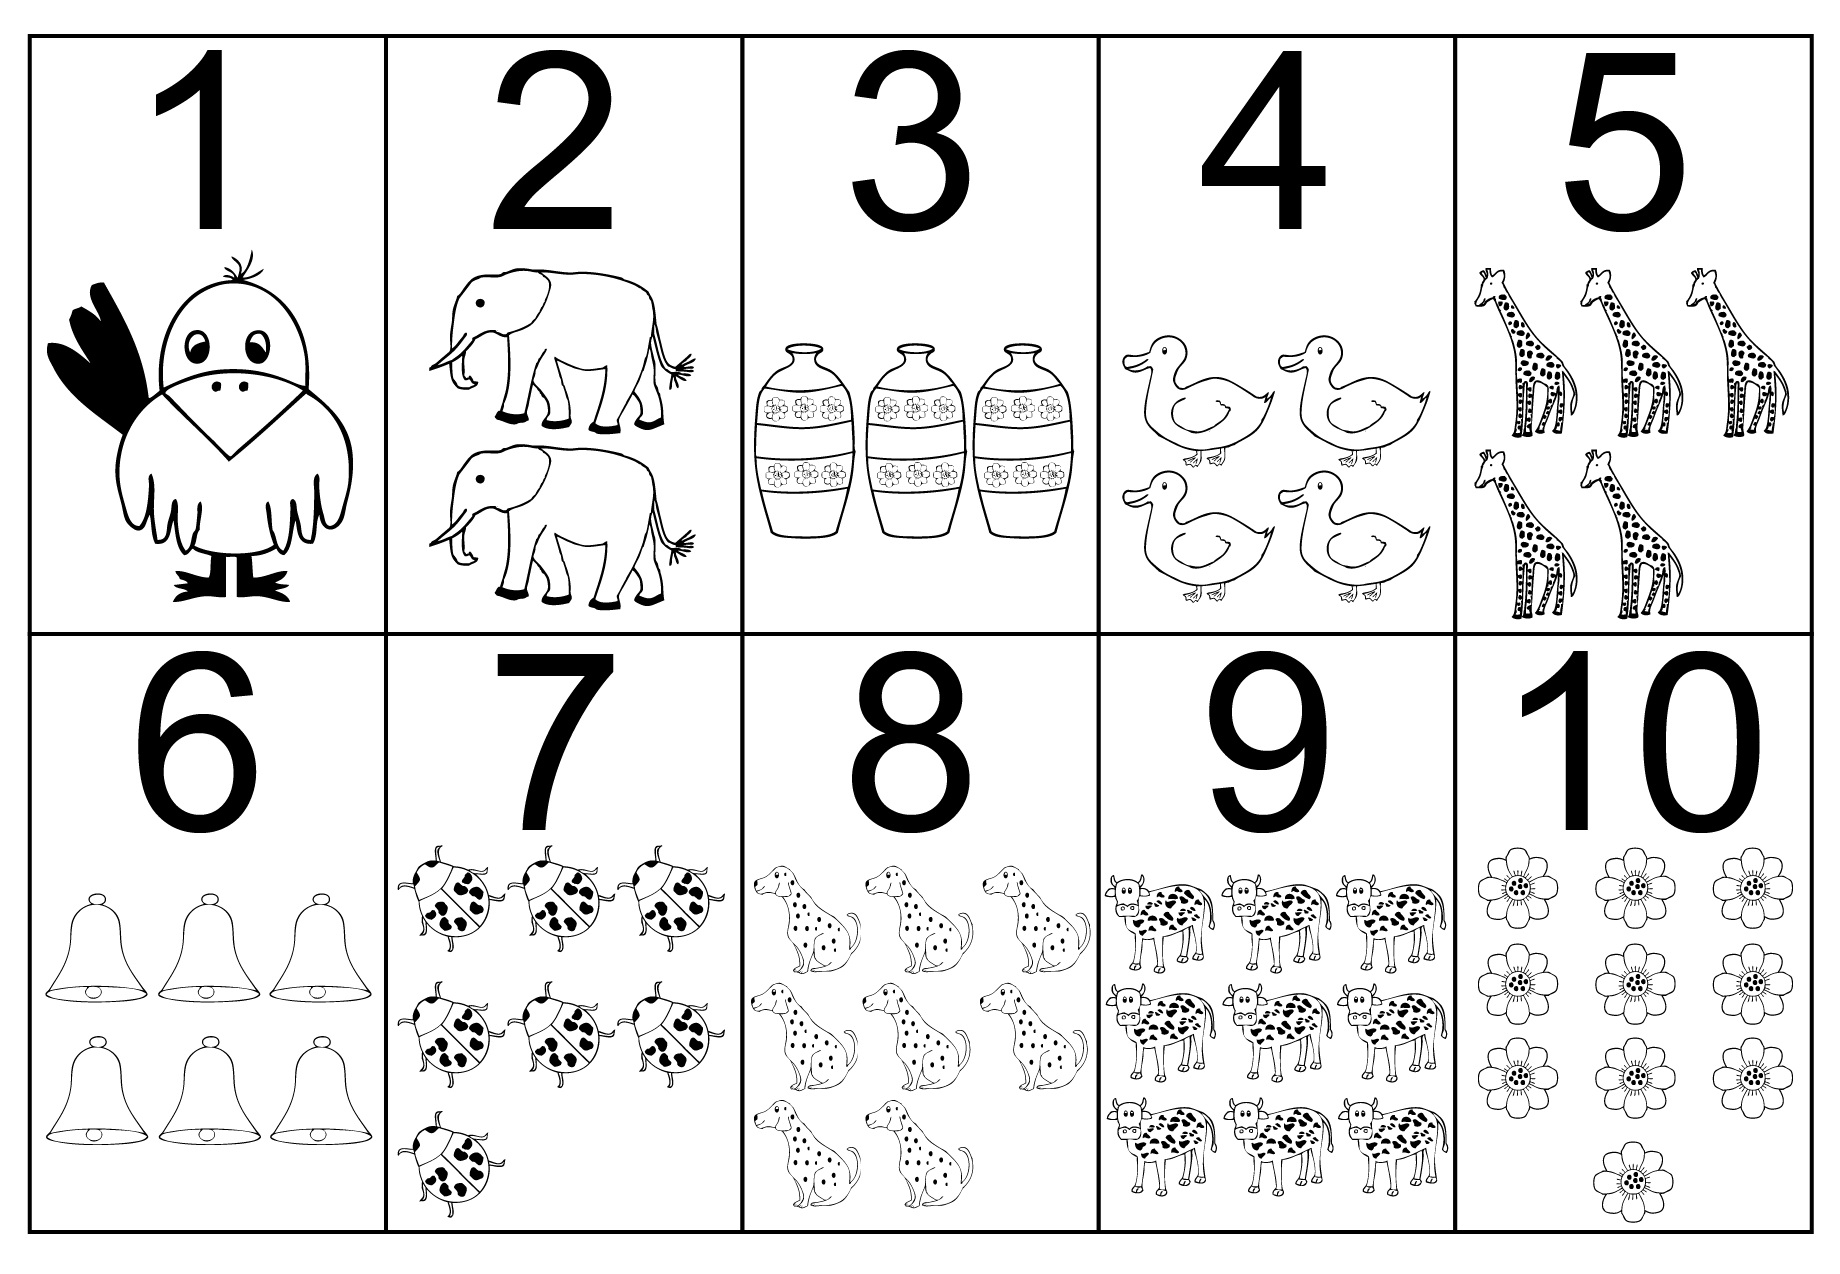 preschool numbers coloring pages - photo#27